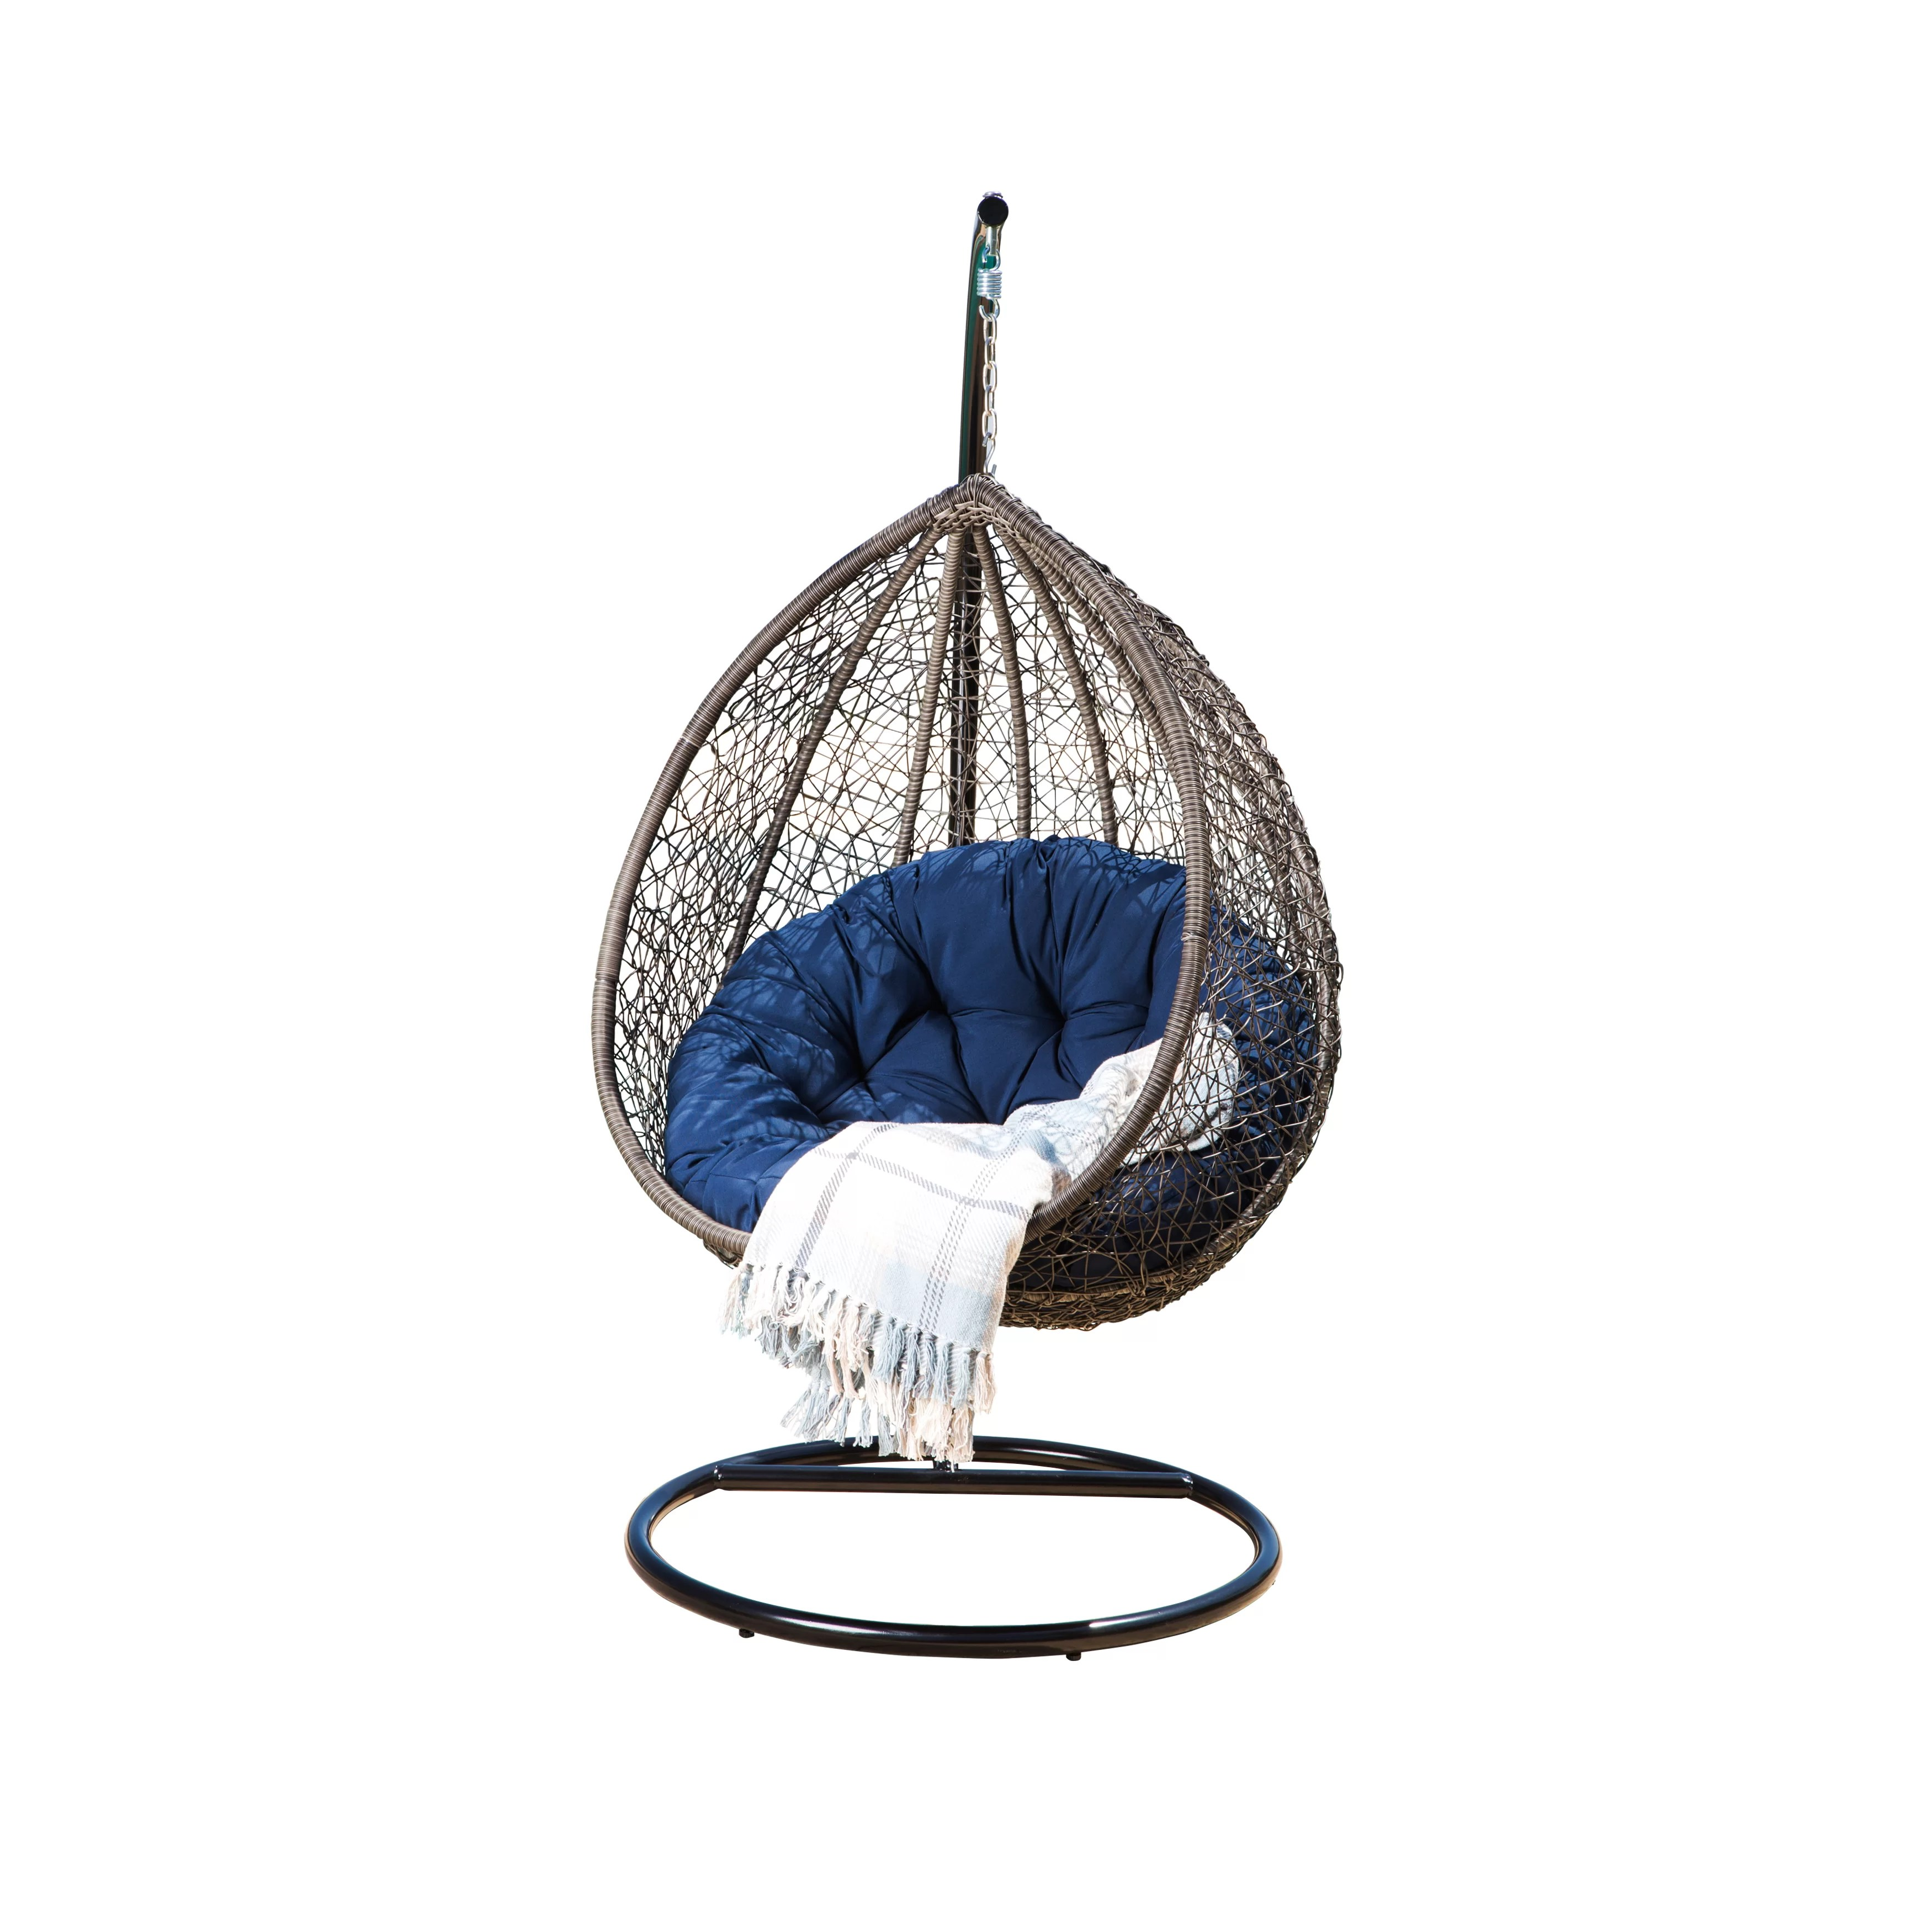 Swing Chair Stand Ostrowski Outdoor Wicker Swing Chair With Stand